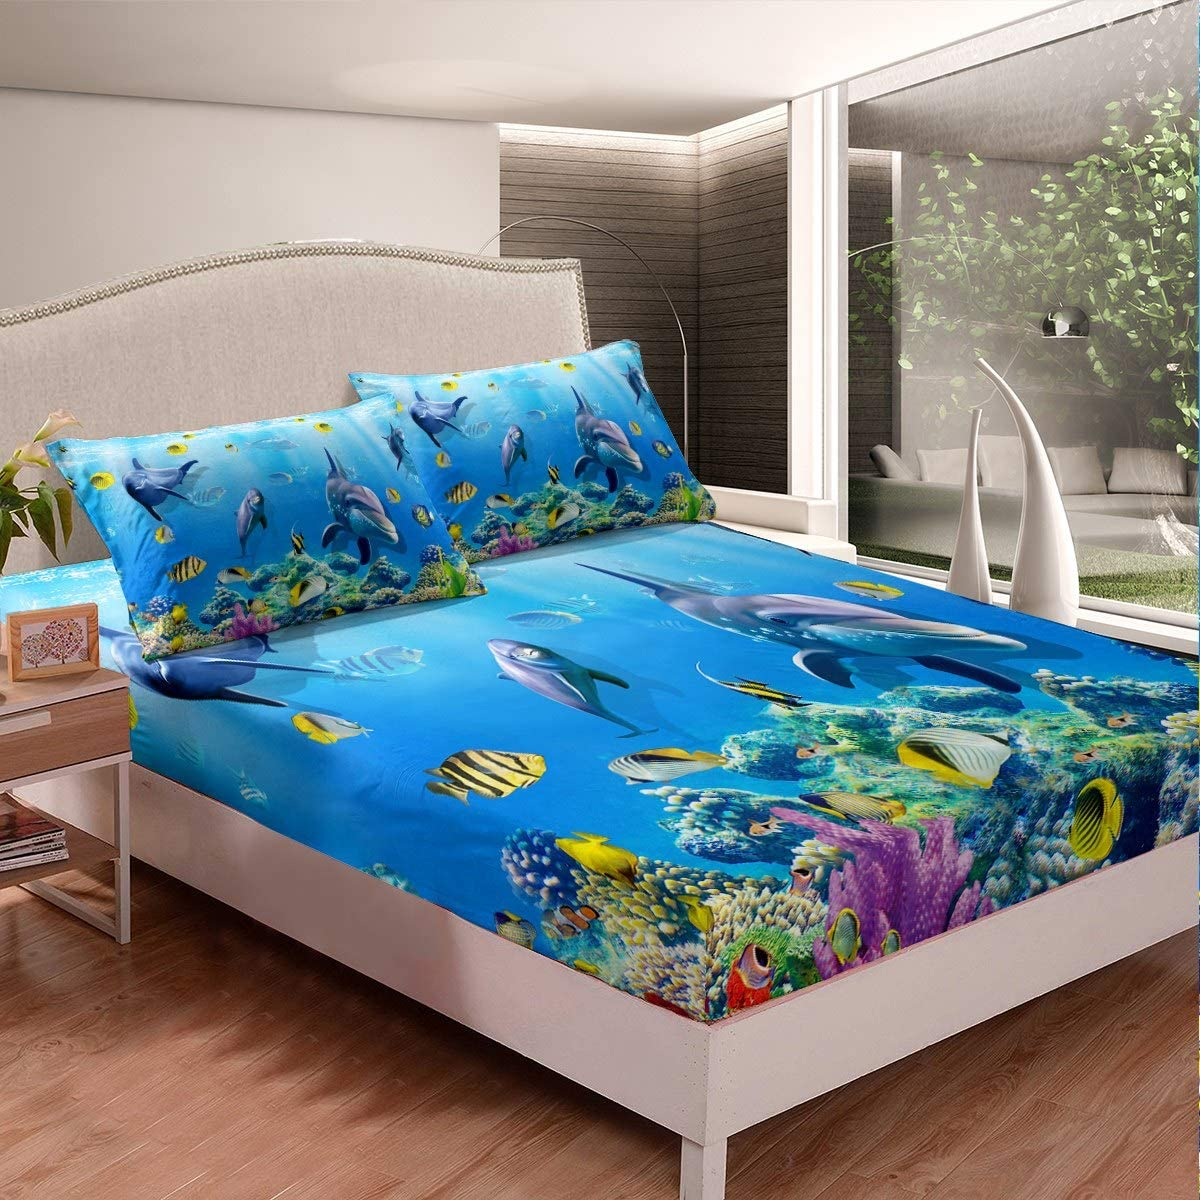 Kids Bed Sheet Set Cute Dinosaur Bedding Set Jungle Animals Pattern Fitted Sheet for Girls Boys Children 3D Dinosaur Printed Bed Cover Decorative Cartoon Zoo Bedding Twin Size